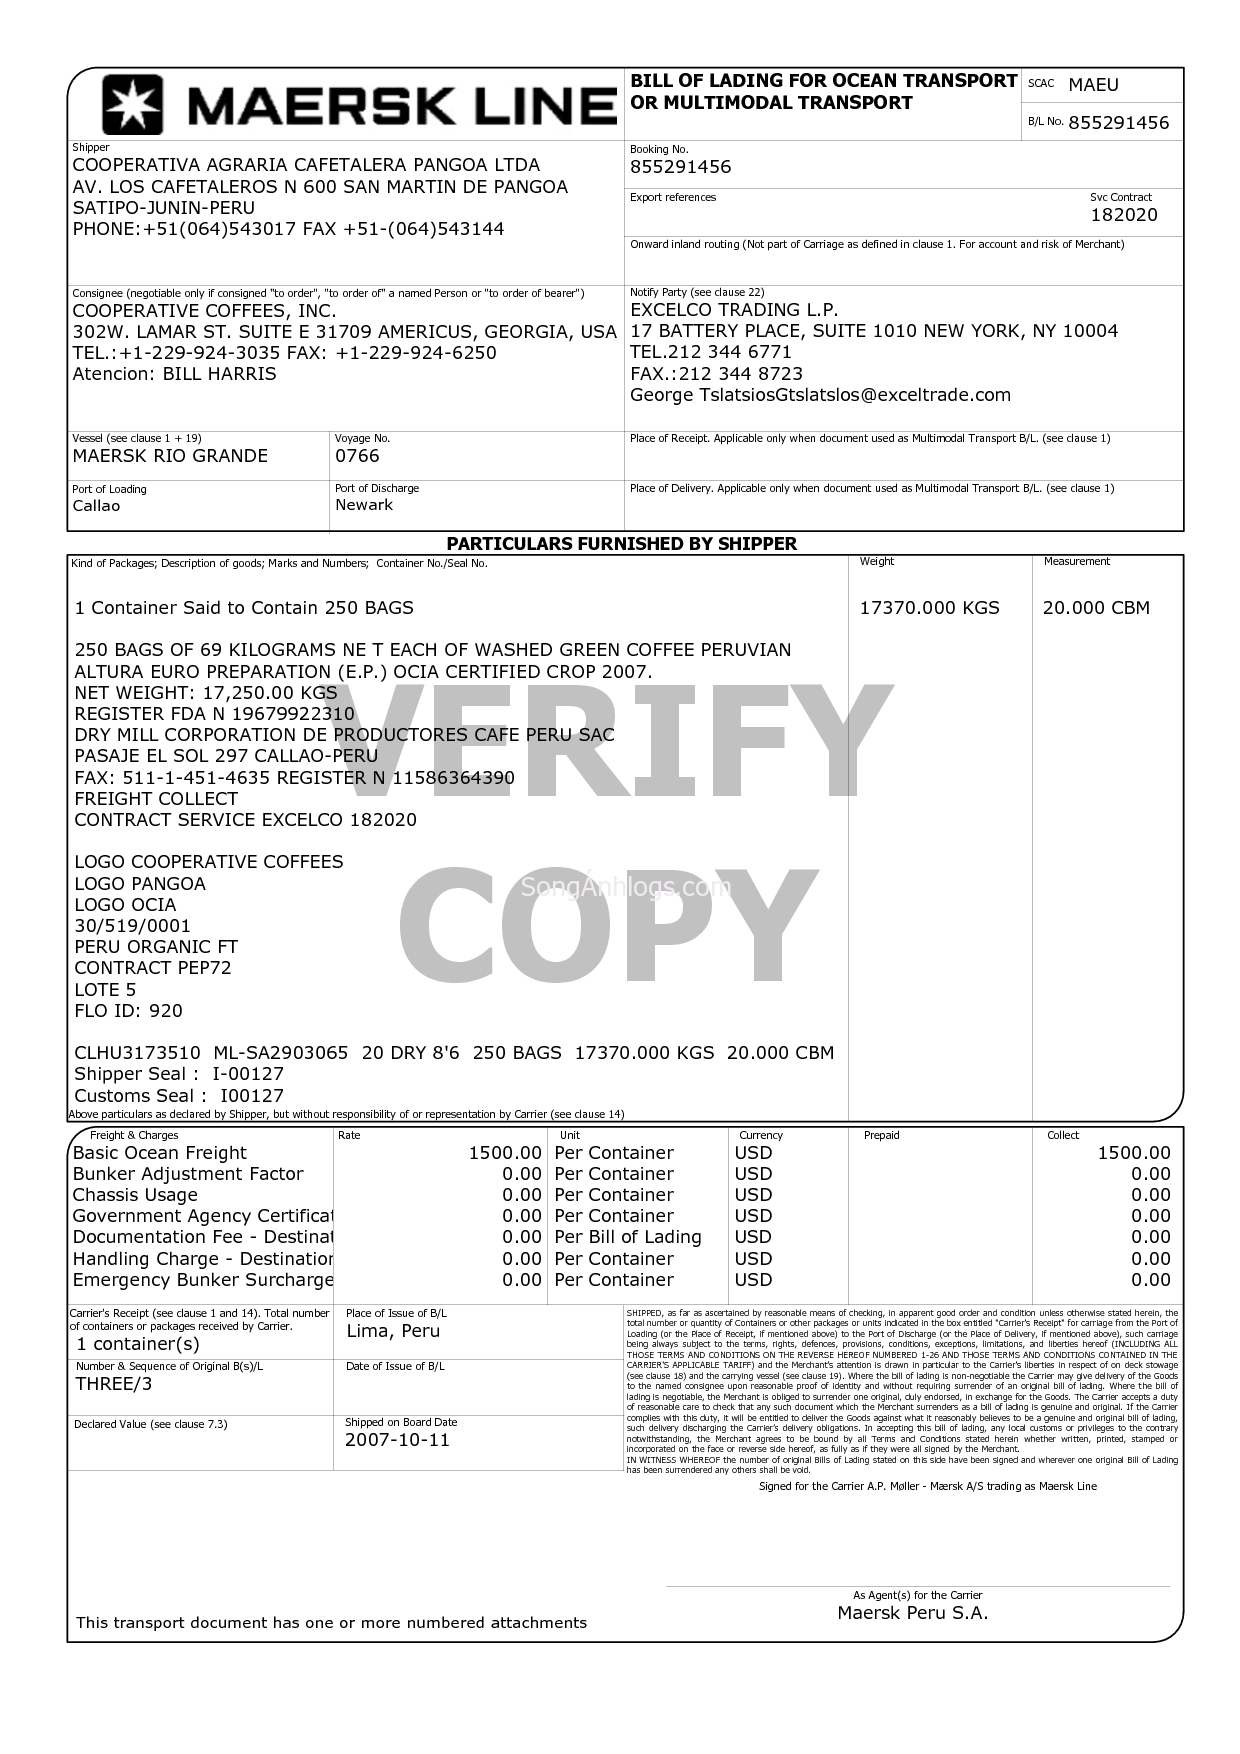 Amazon Com Adams Bill Of Lading Short Form 8 5 X 7 5 Inches 3 – Sample of Bill of Lading Document